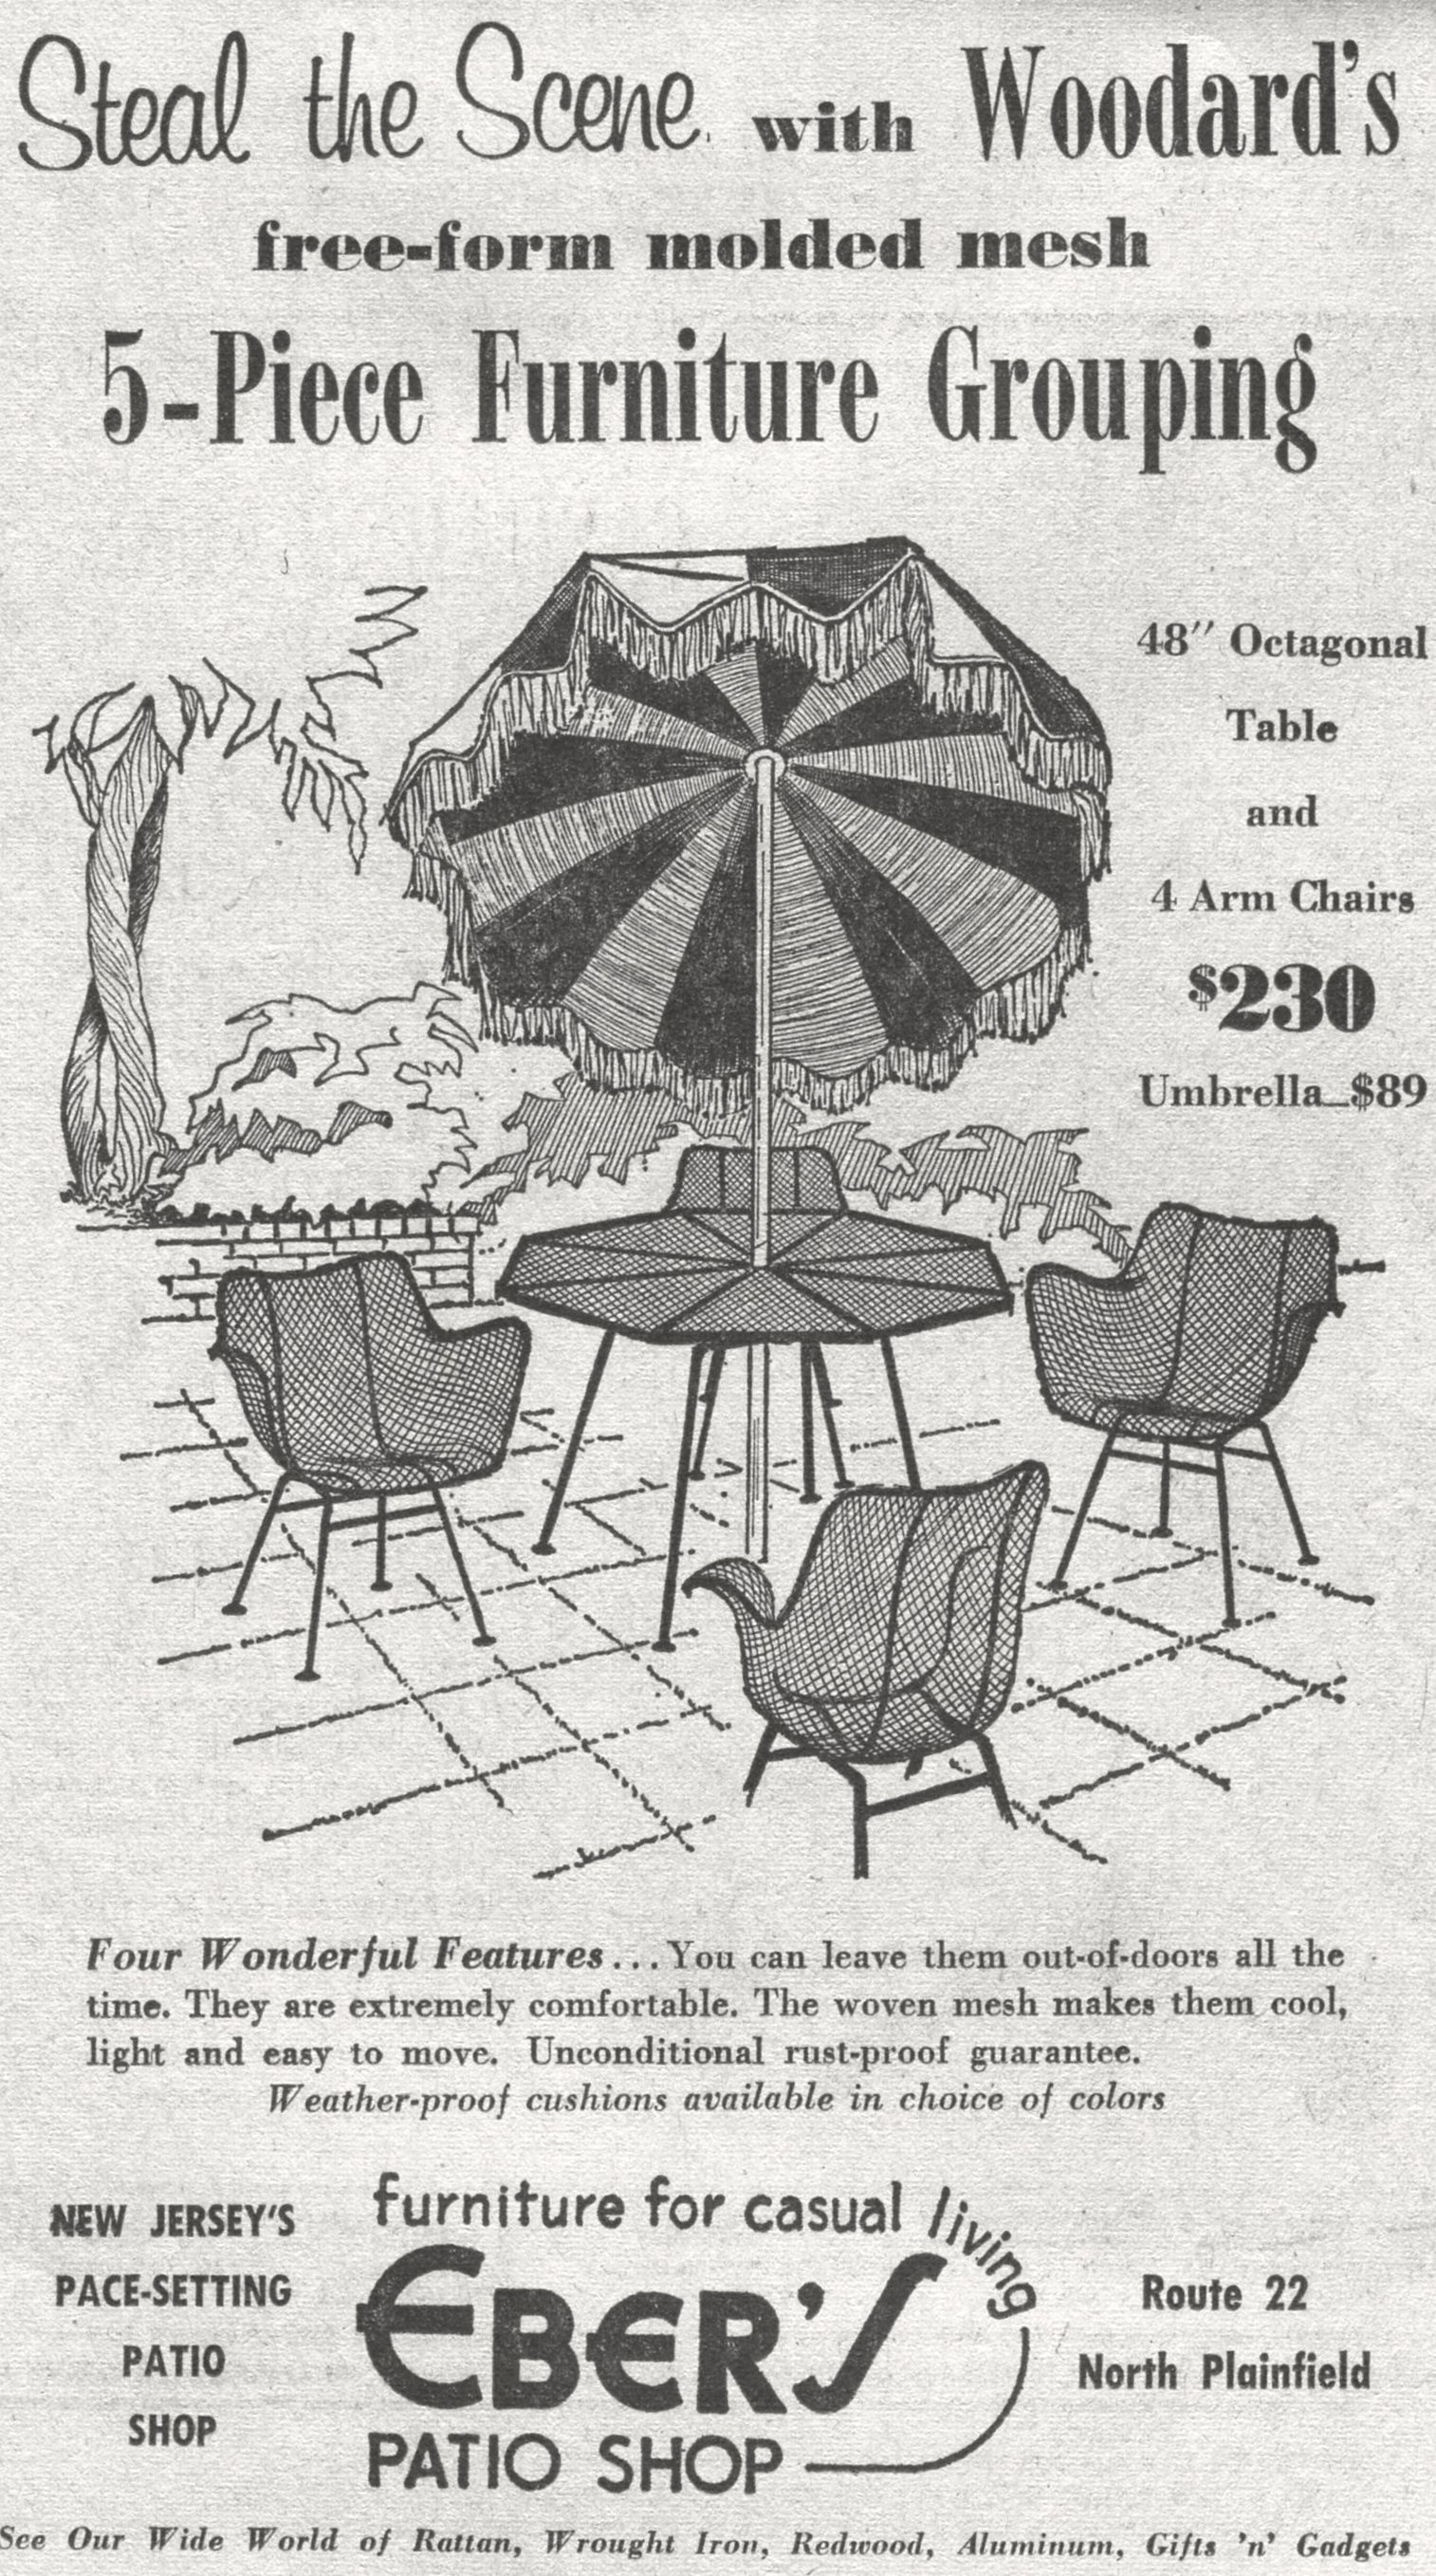 Eber s Patio Shop Ad in North Plainfield NJ 1968